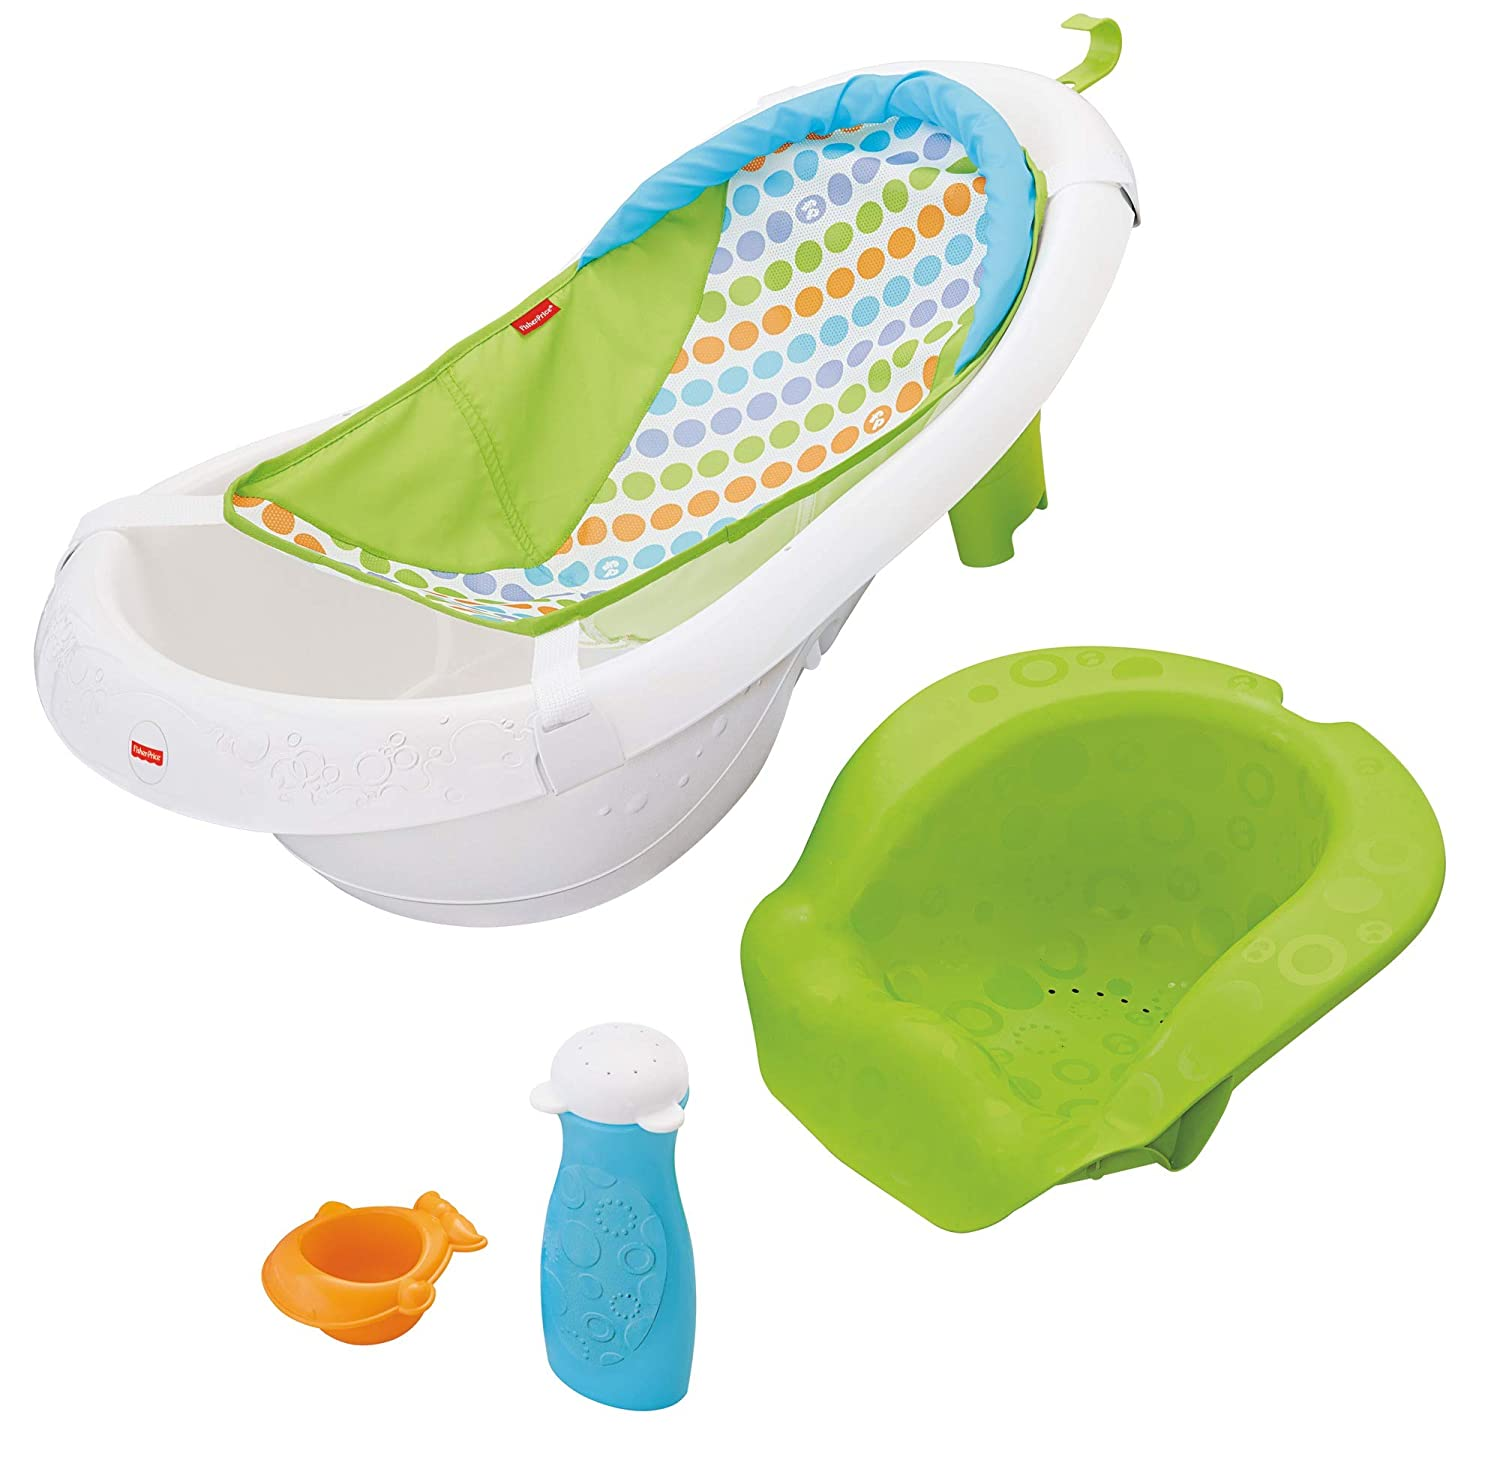 3. Fisher Price 4-in-1 Sling 'n Seat Tub